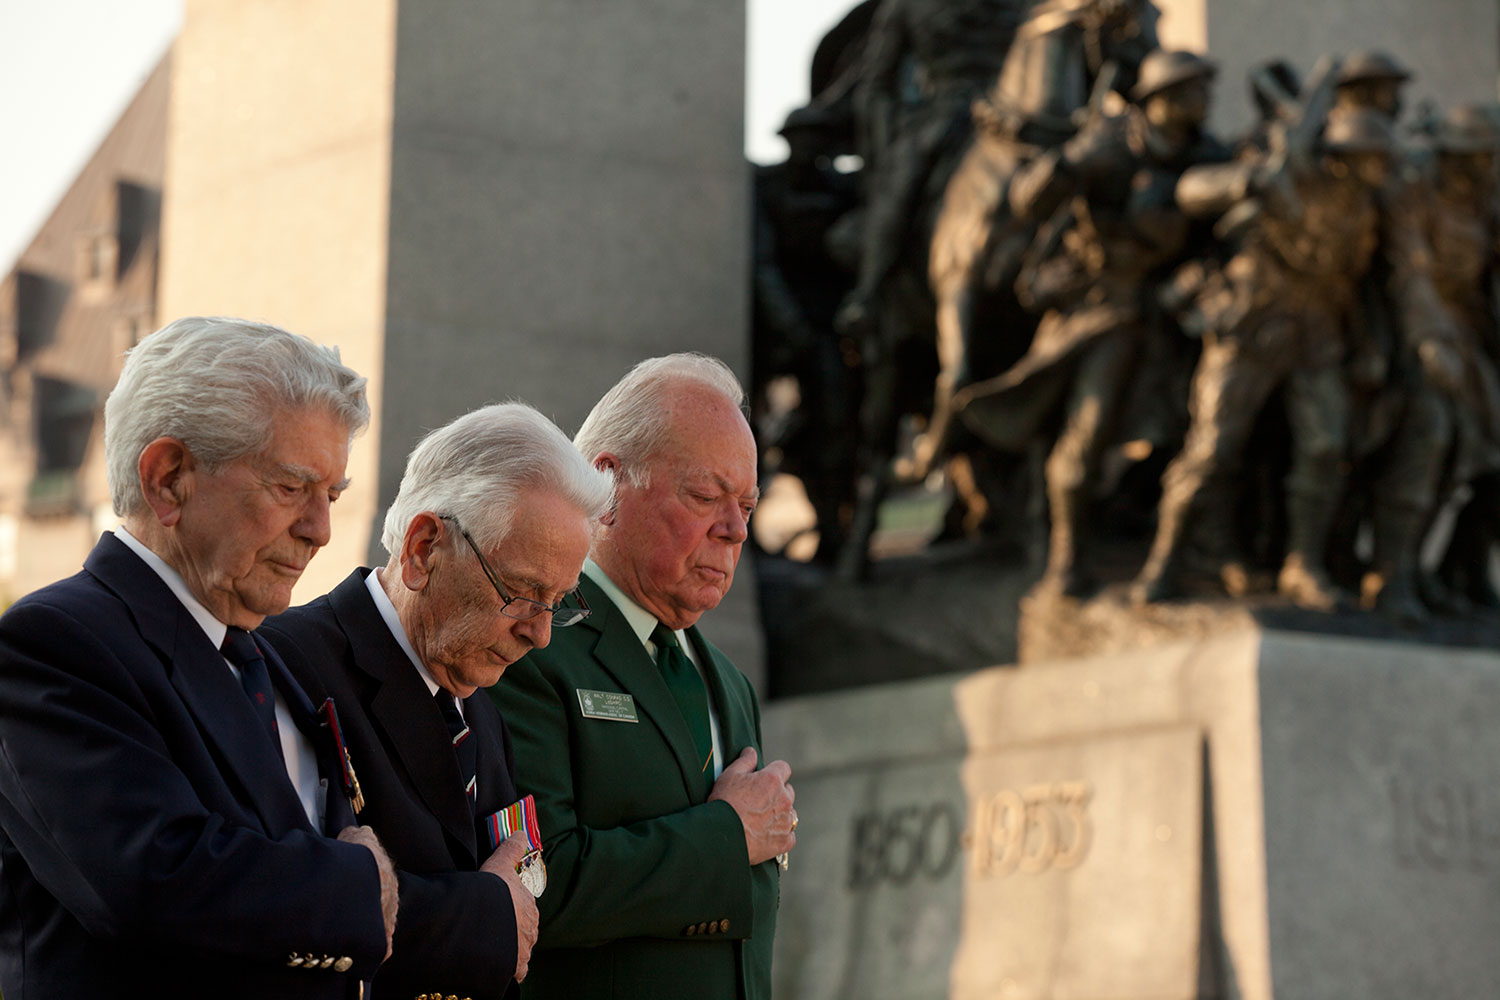 View enlarged image of the veterans